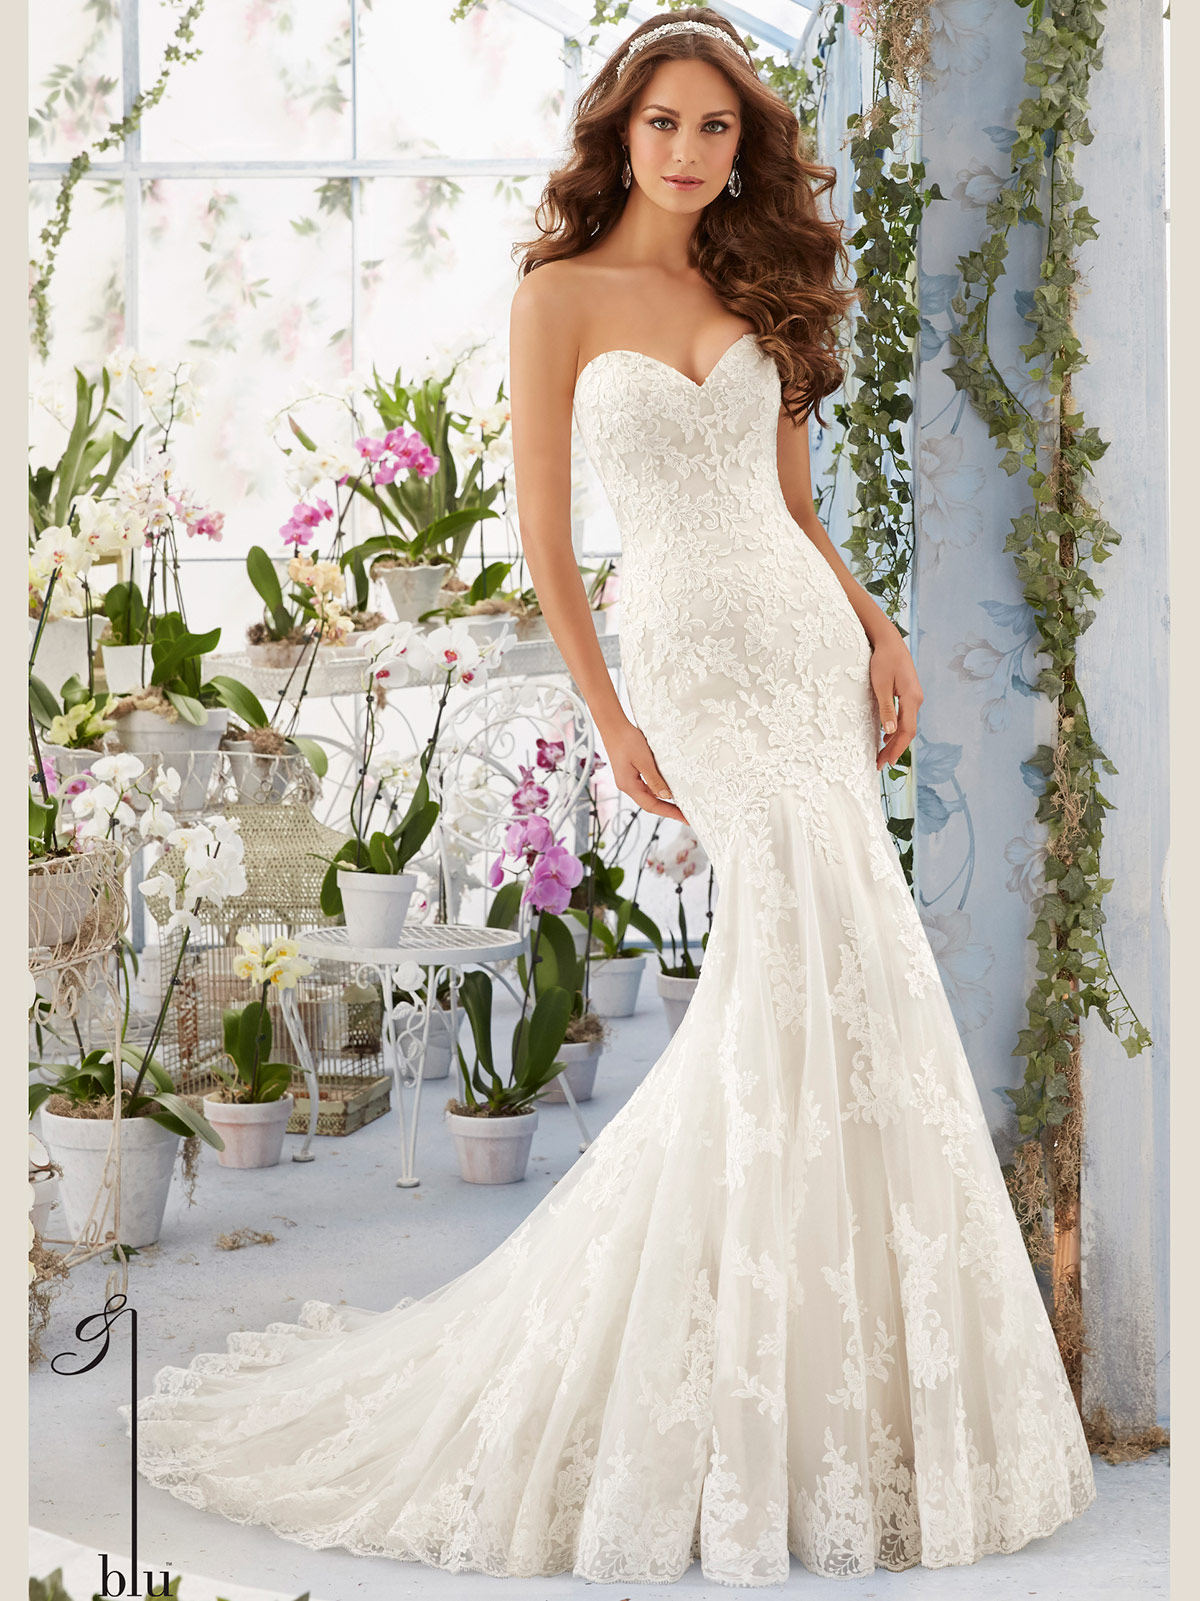 Mori Lee Blu 5413 Sweetheart Lace Floor Length Bridal Gown